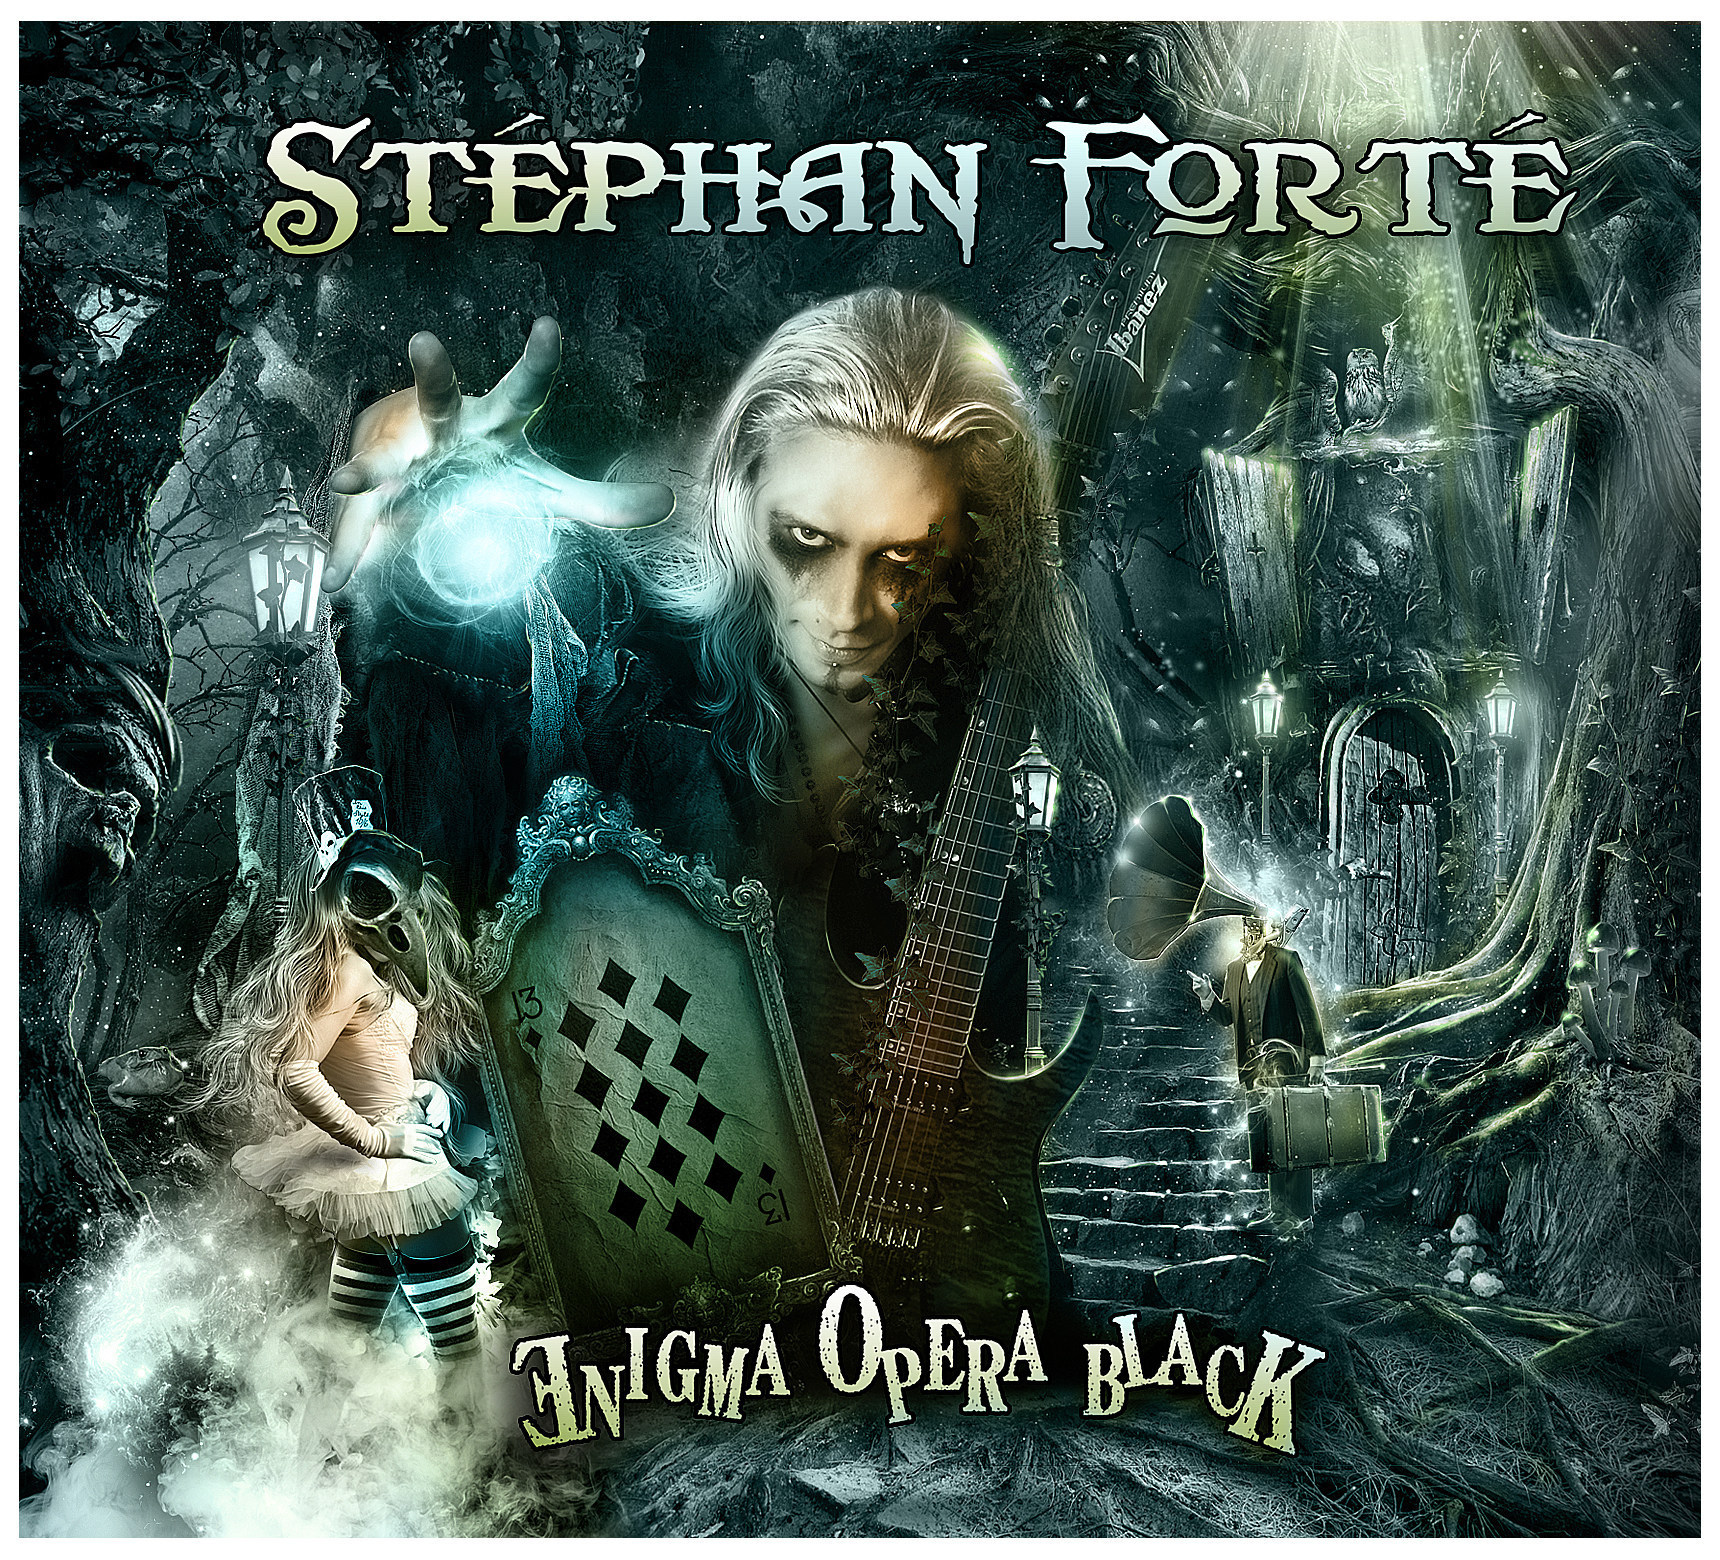 Guitar Virtuoso Stephan Forte to Release New Solo Album 'Enigma Opera Black' 10/28